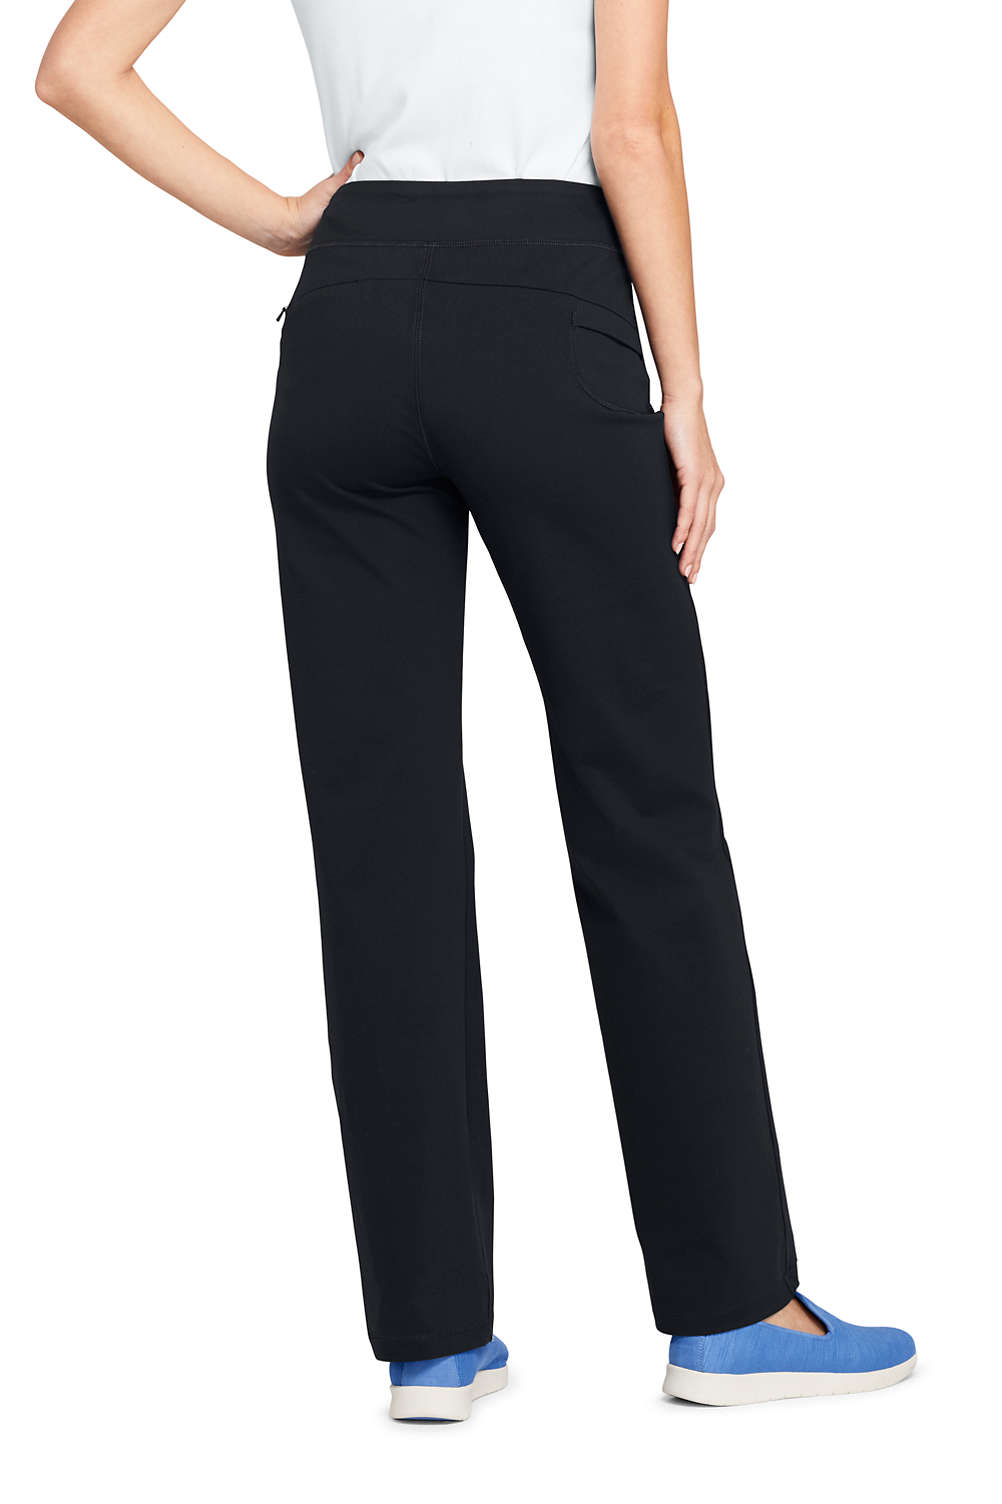 c0cd08541bc Women s Active Yoga Pants from Lands  End